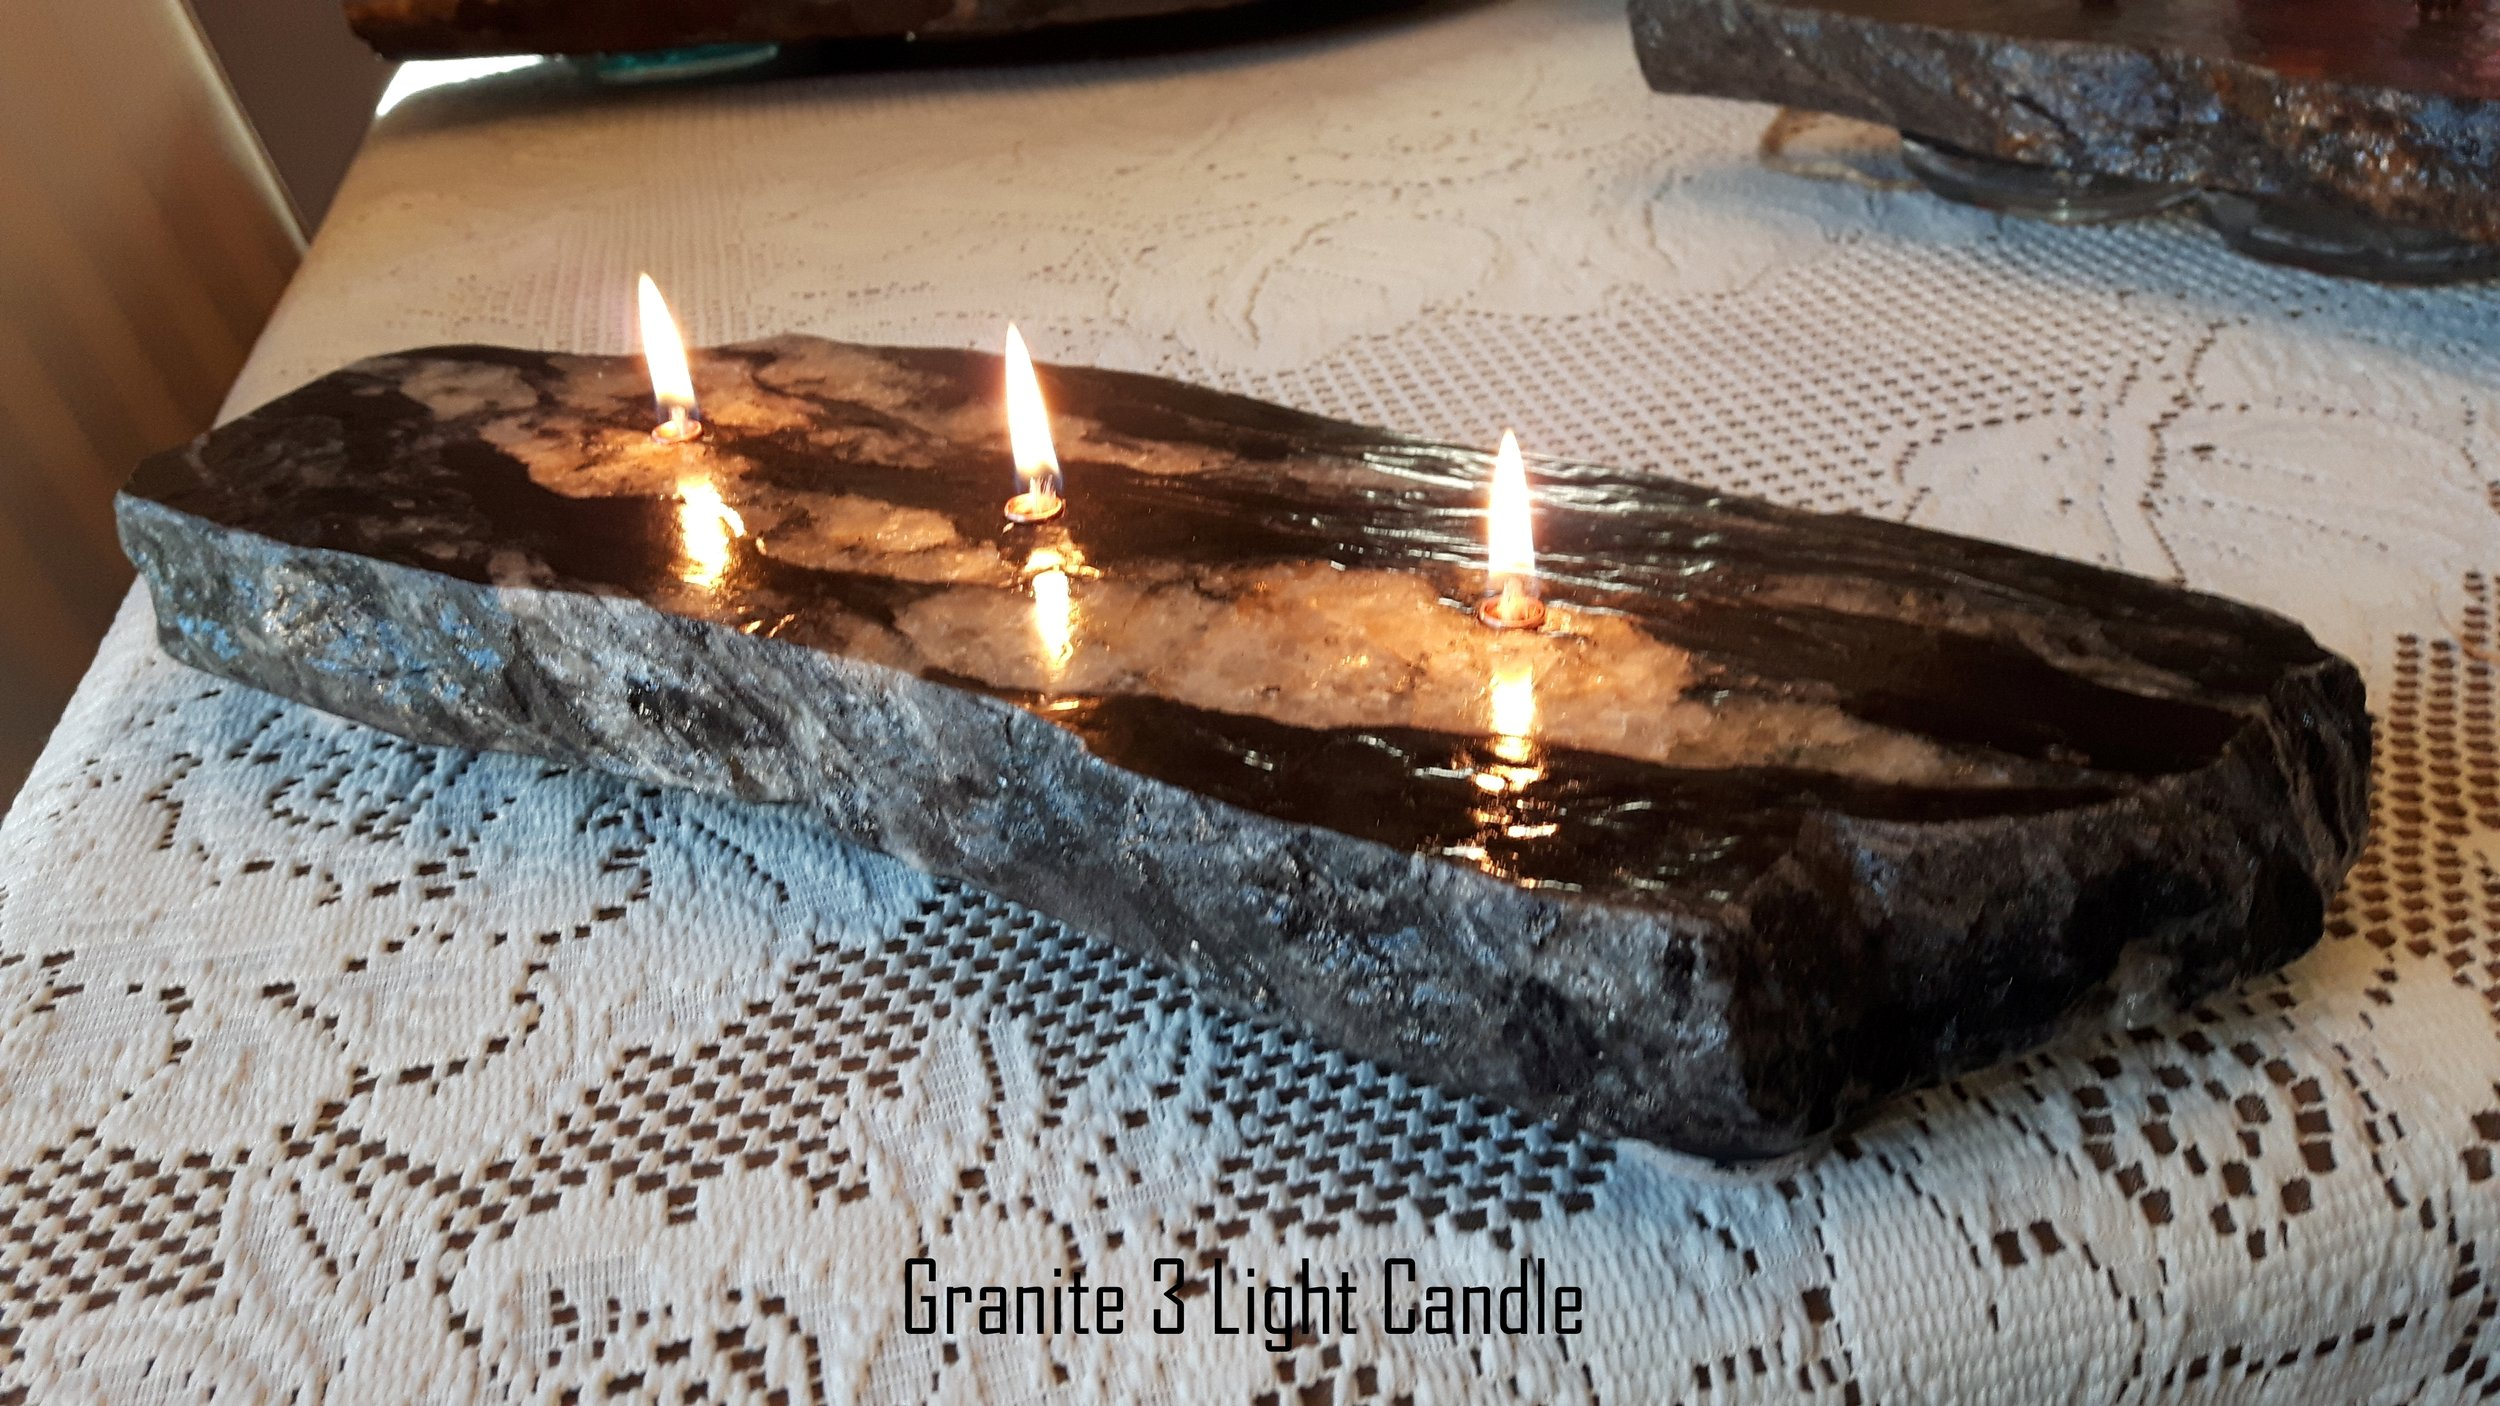 Granite 3 light candle - Brian Cady.jpg